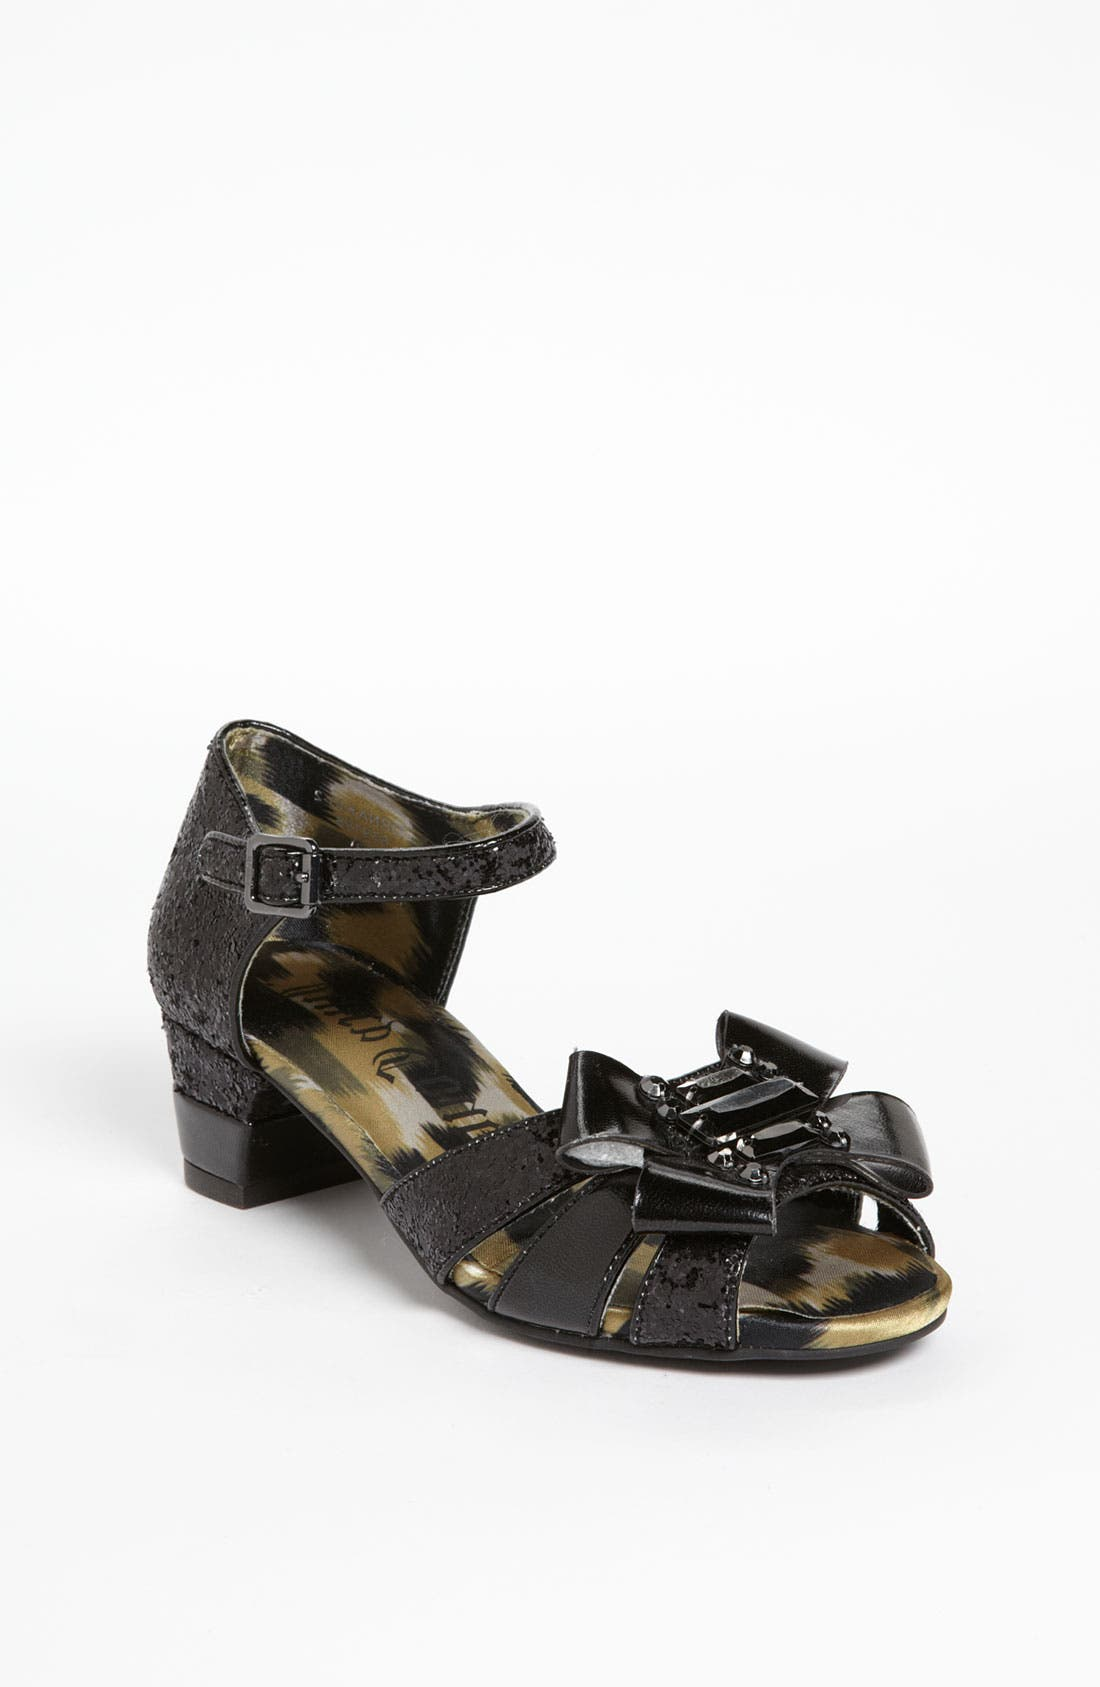 Alternate Image 1 Selected - Juicy Couture 'Lorna' Sandal (Toddler, Little Kid & Big Kid)